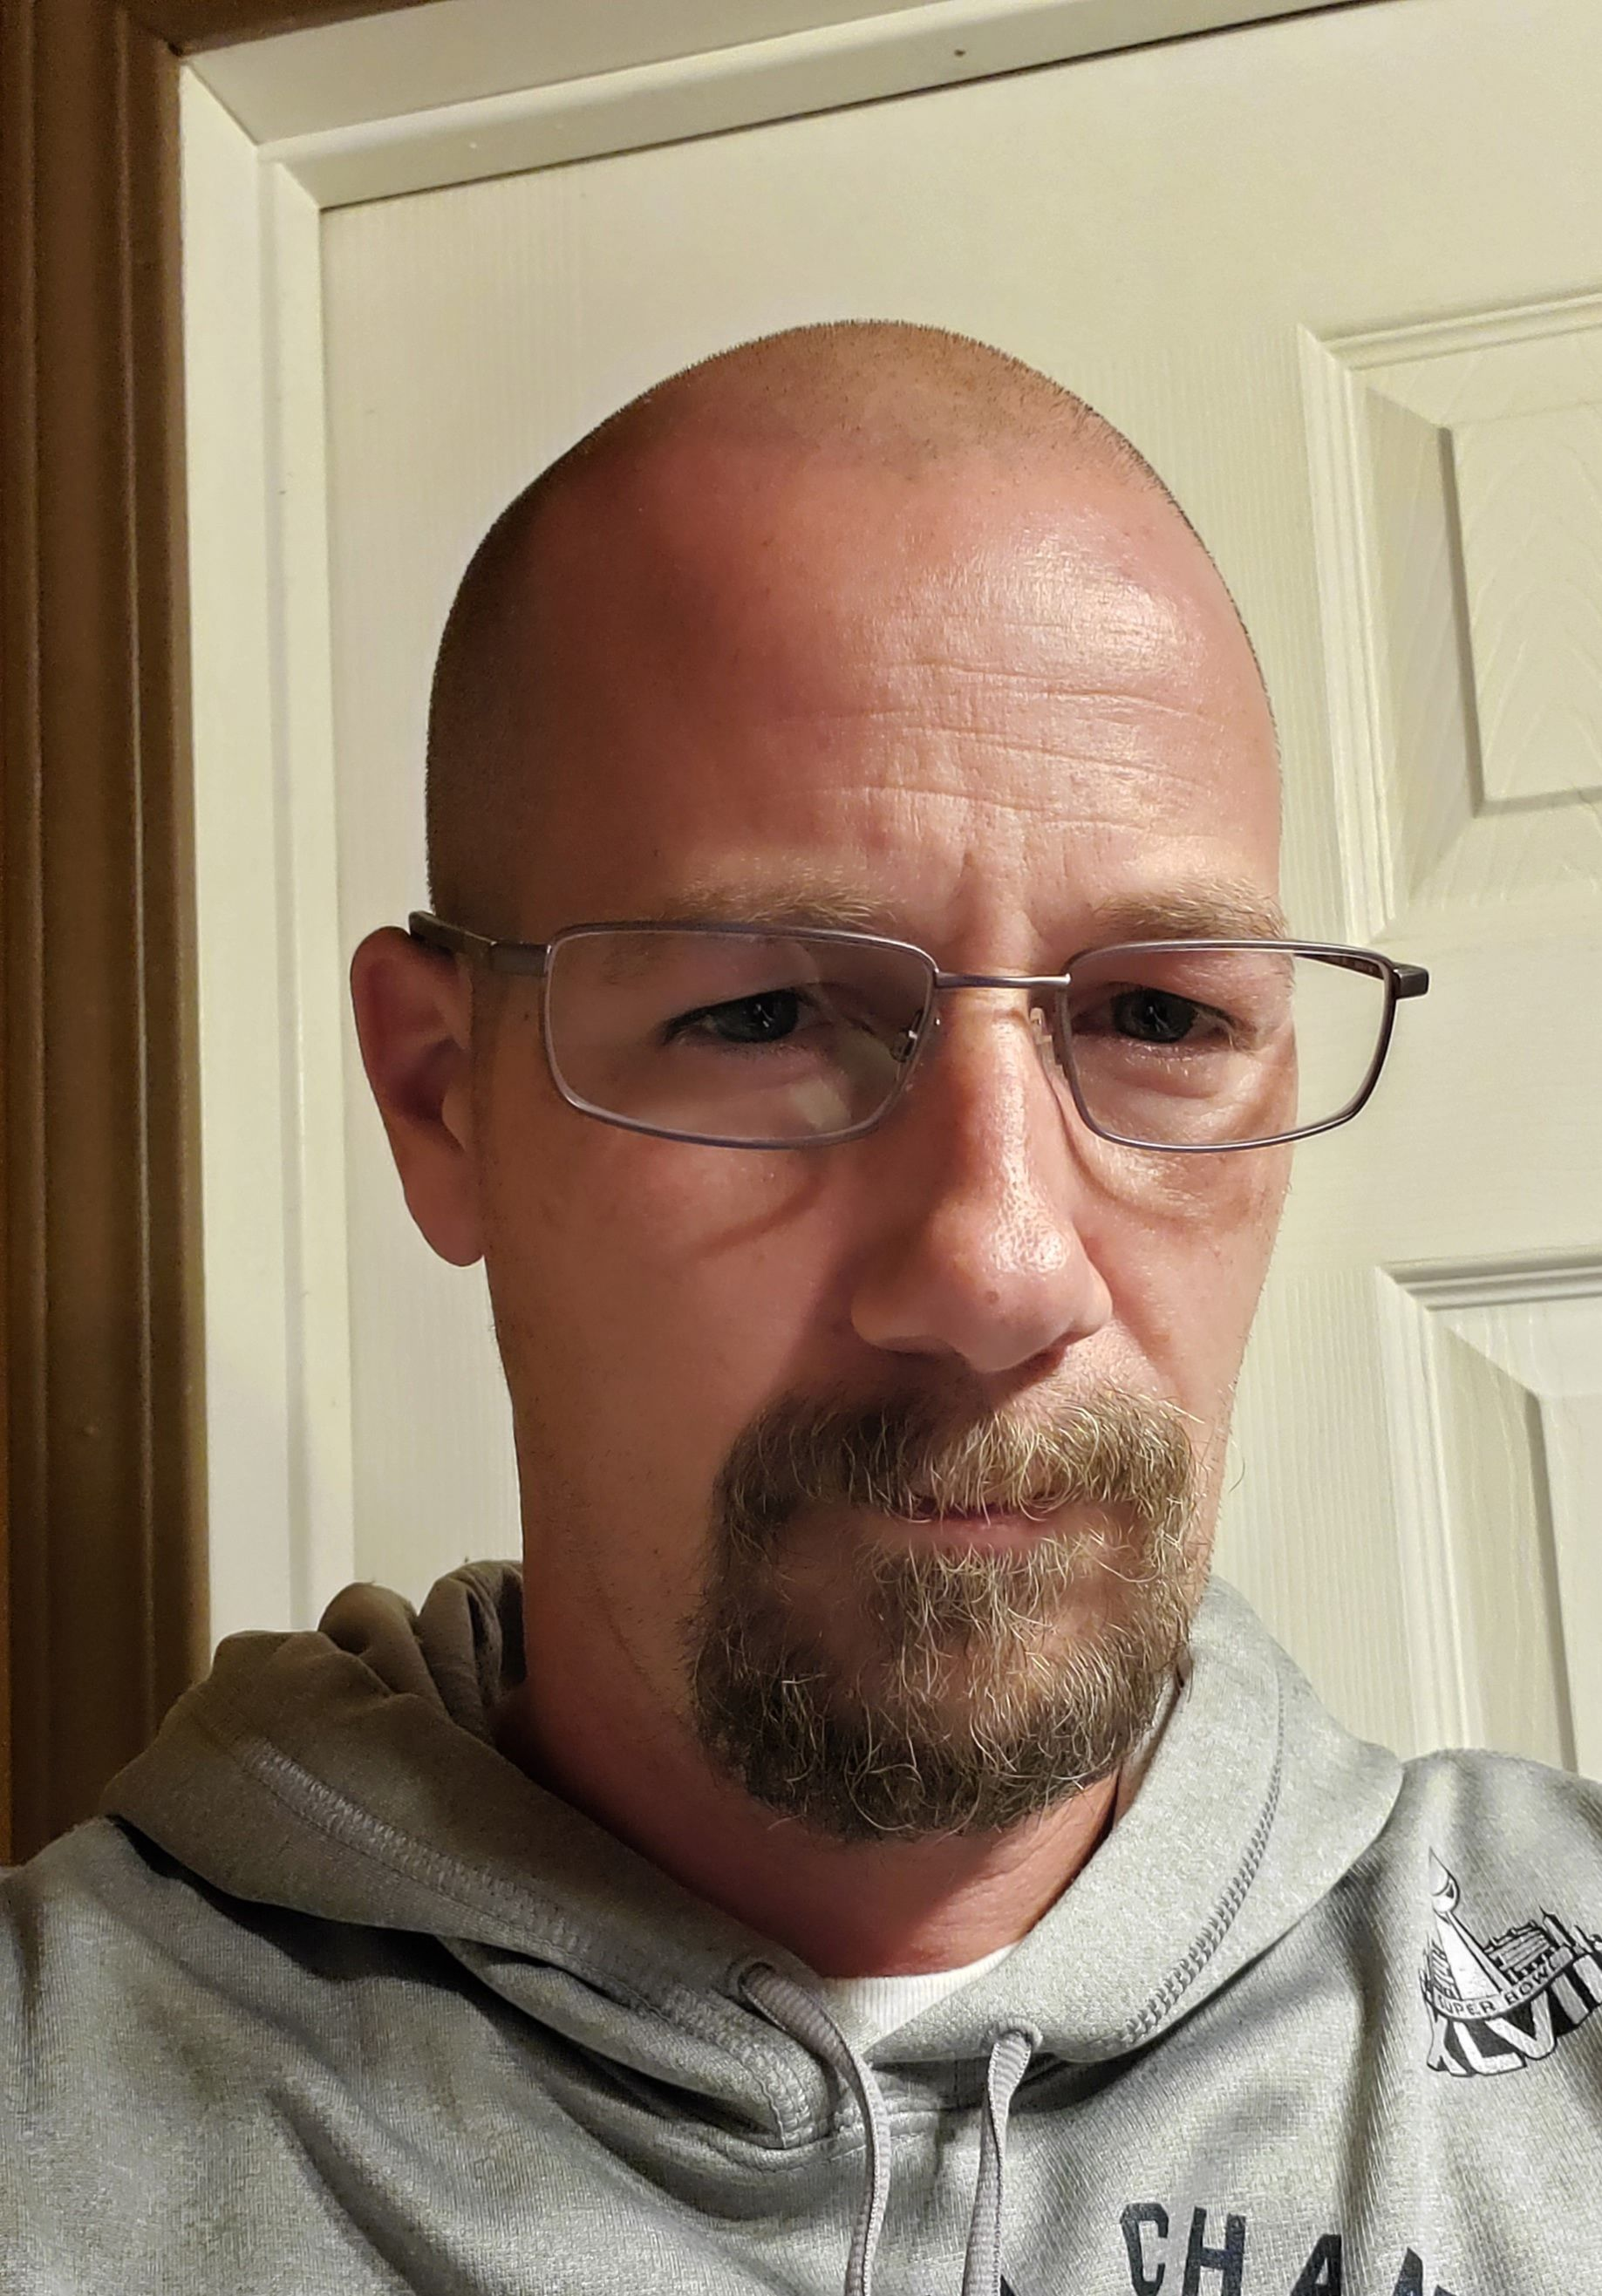 At 40, just got my first pair of prescription glasses, and was told I look like Walter White. I don't see it...